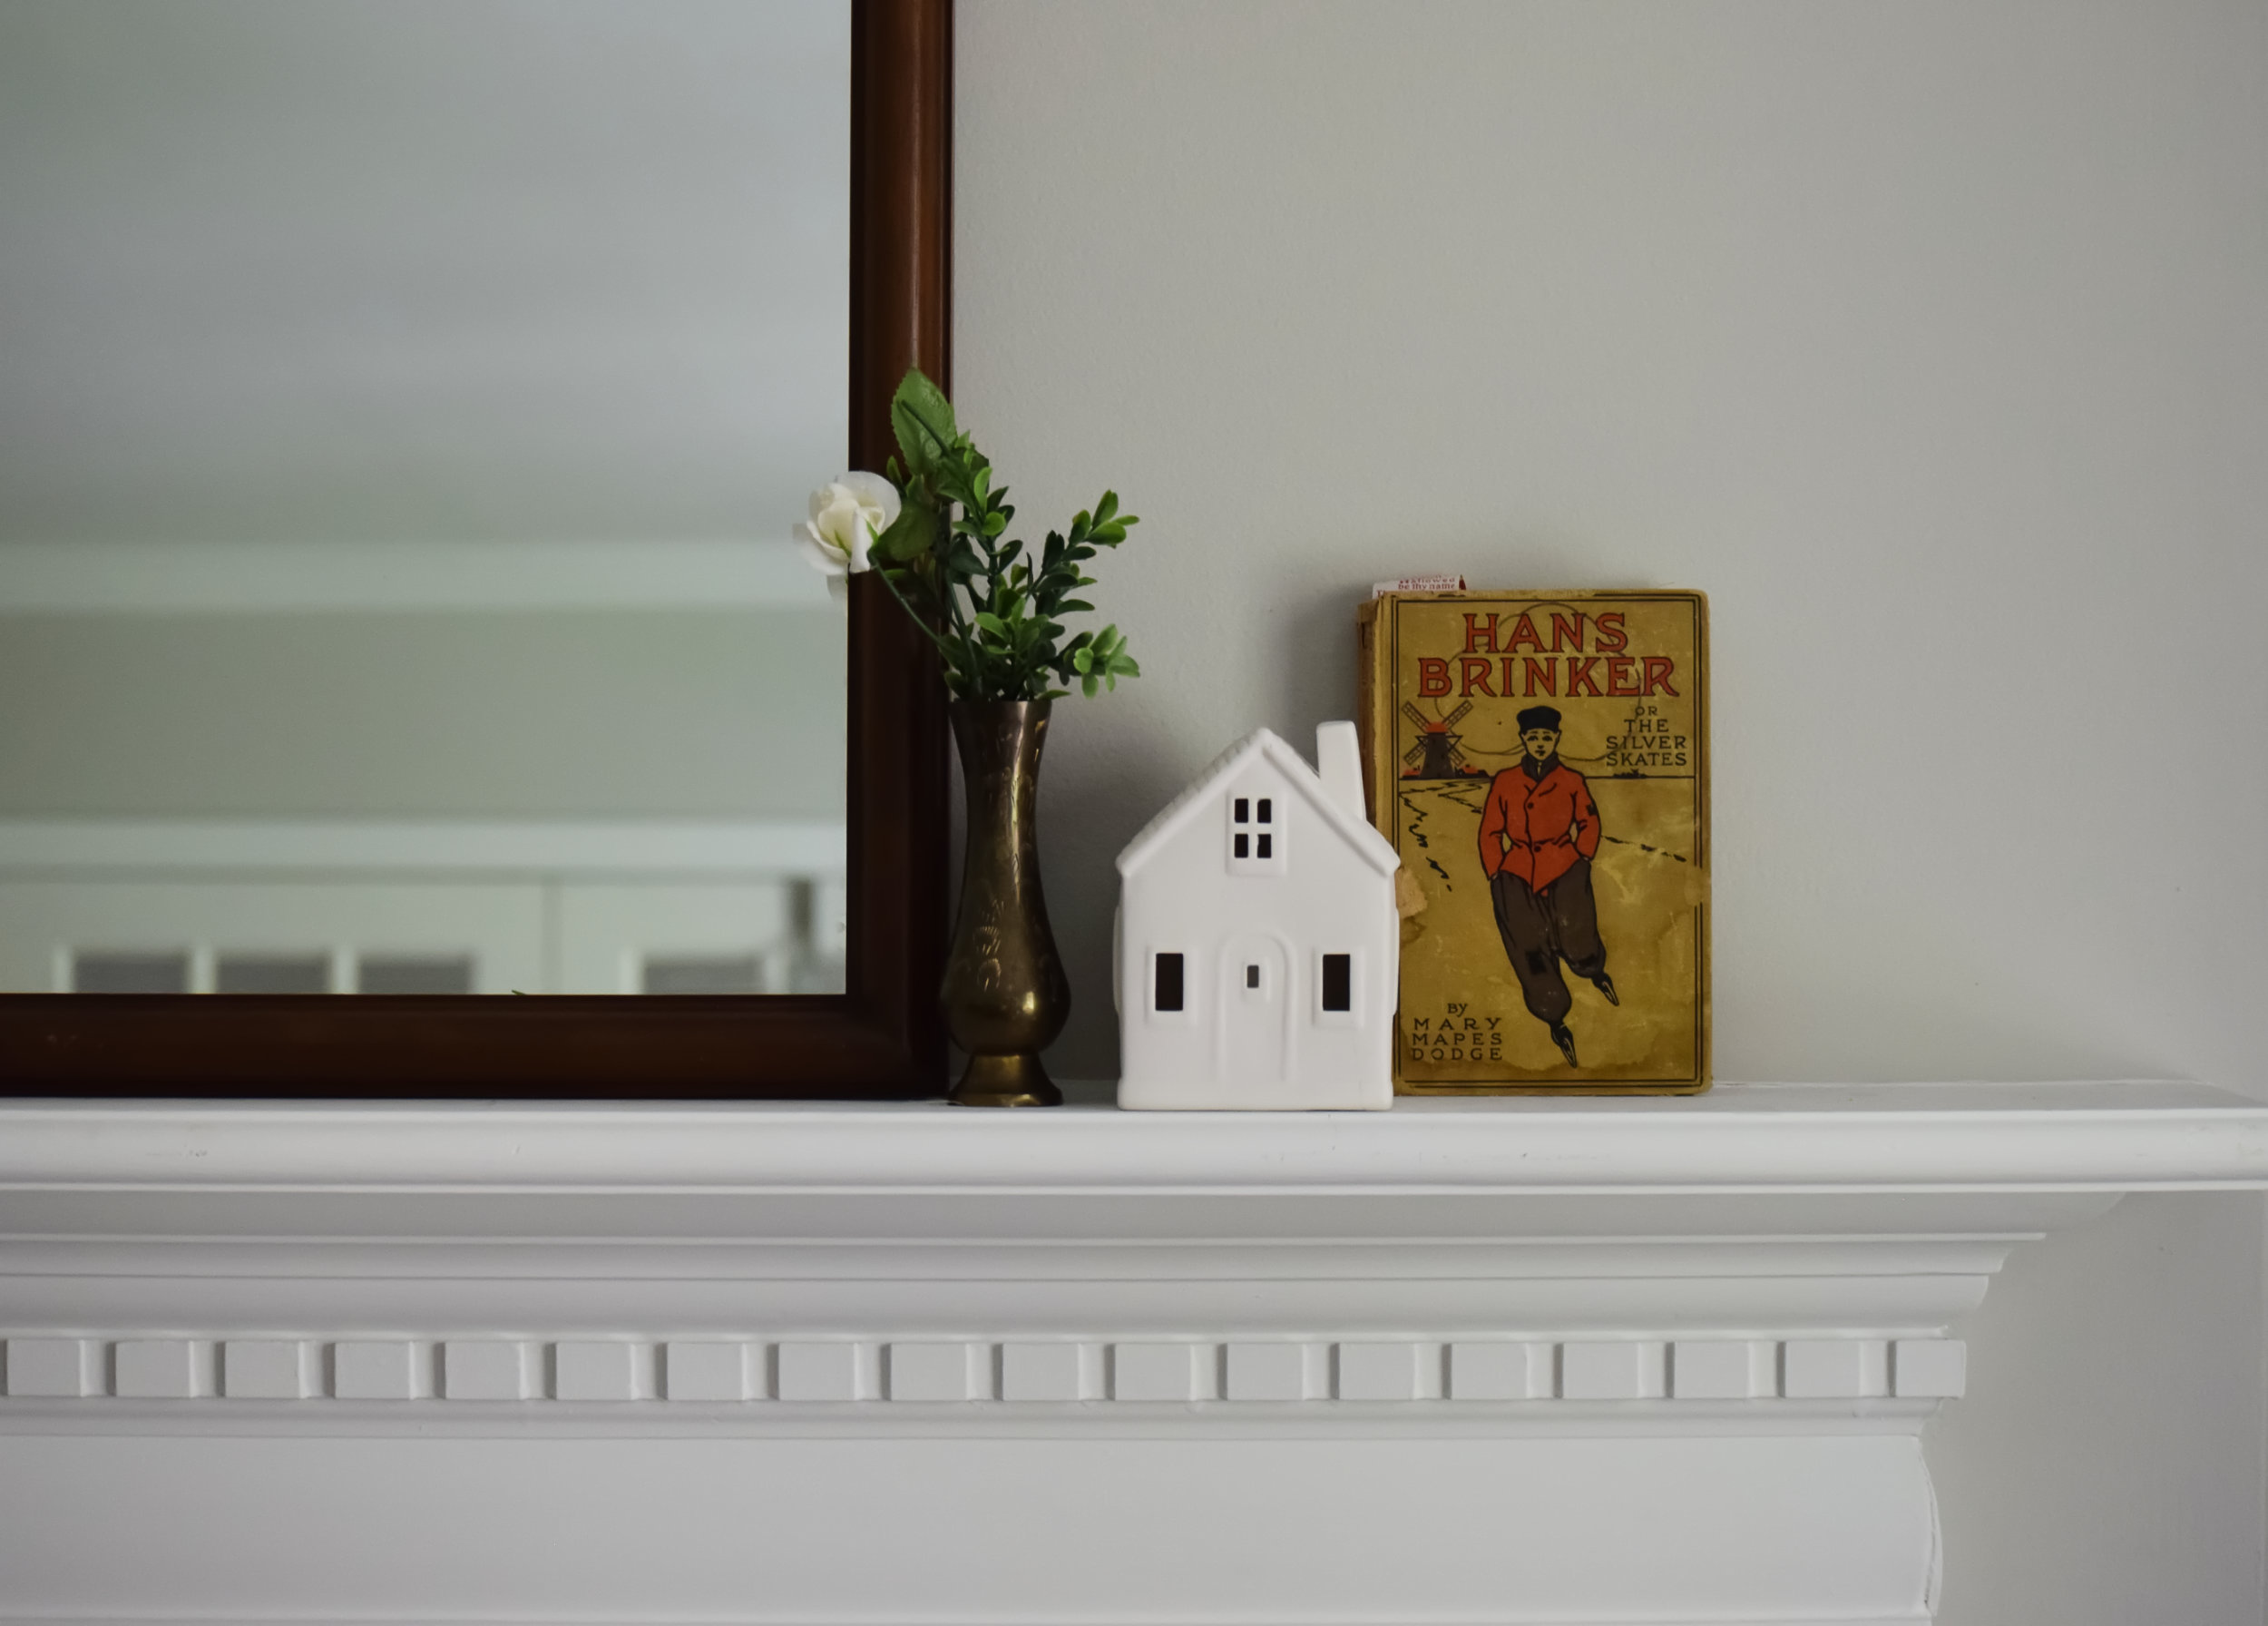 hans brinker book ceramic house and flowers in vase next to mirror on white fireplace mantel